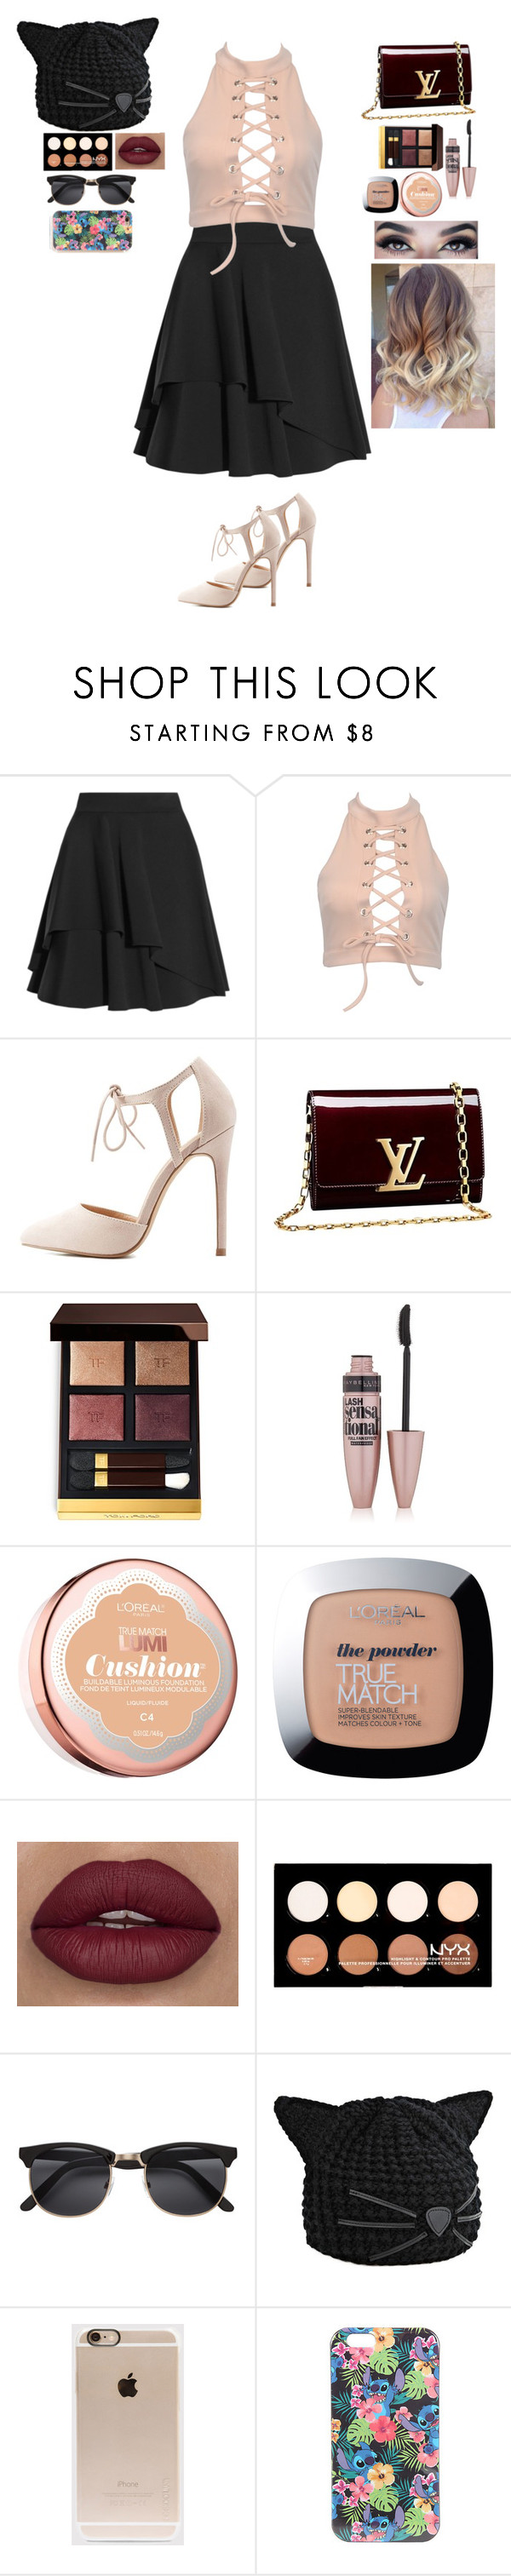 """""""Louis Vuitton"""" by baillieloucks ❤ liked on Polyvore featuring Alexander McQueen, Charlotte Russe, Louis Vuitton, Tom Ford, Maybelline, L'Oréal Paris, NYX, Karl Lagerfeld, Incase and Disney"""